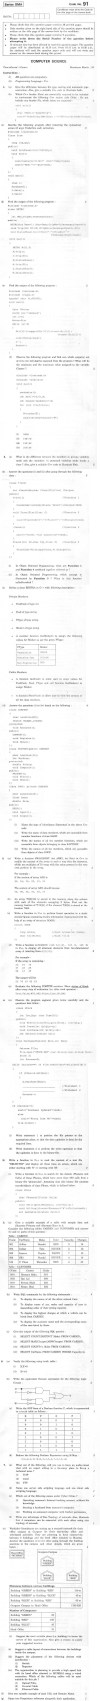 CBSE Class XII Previous Year Question Paper 2012: Computer Science Image by AglaSem